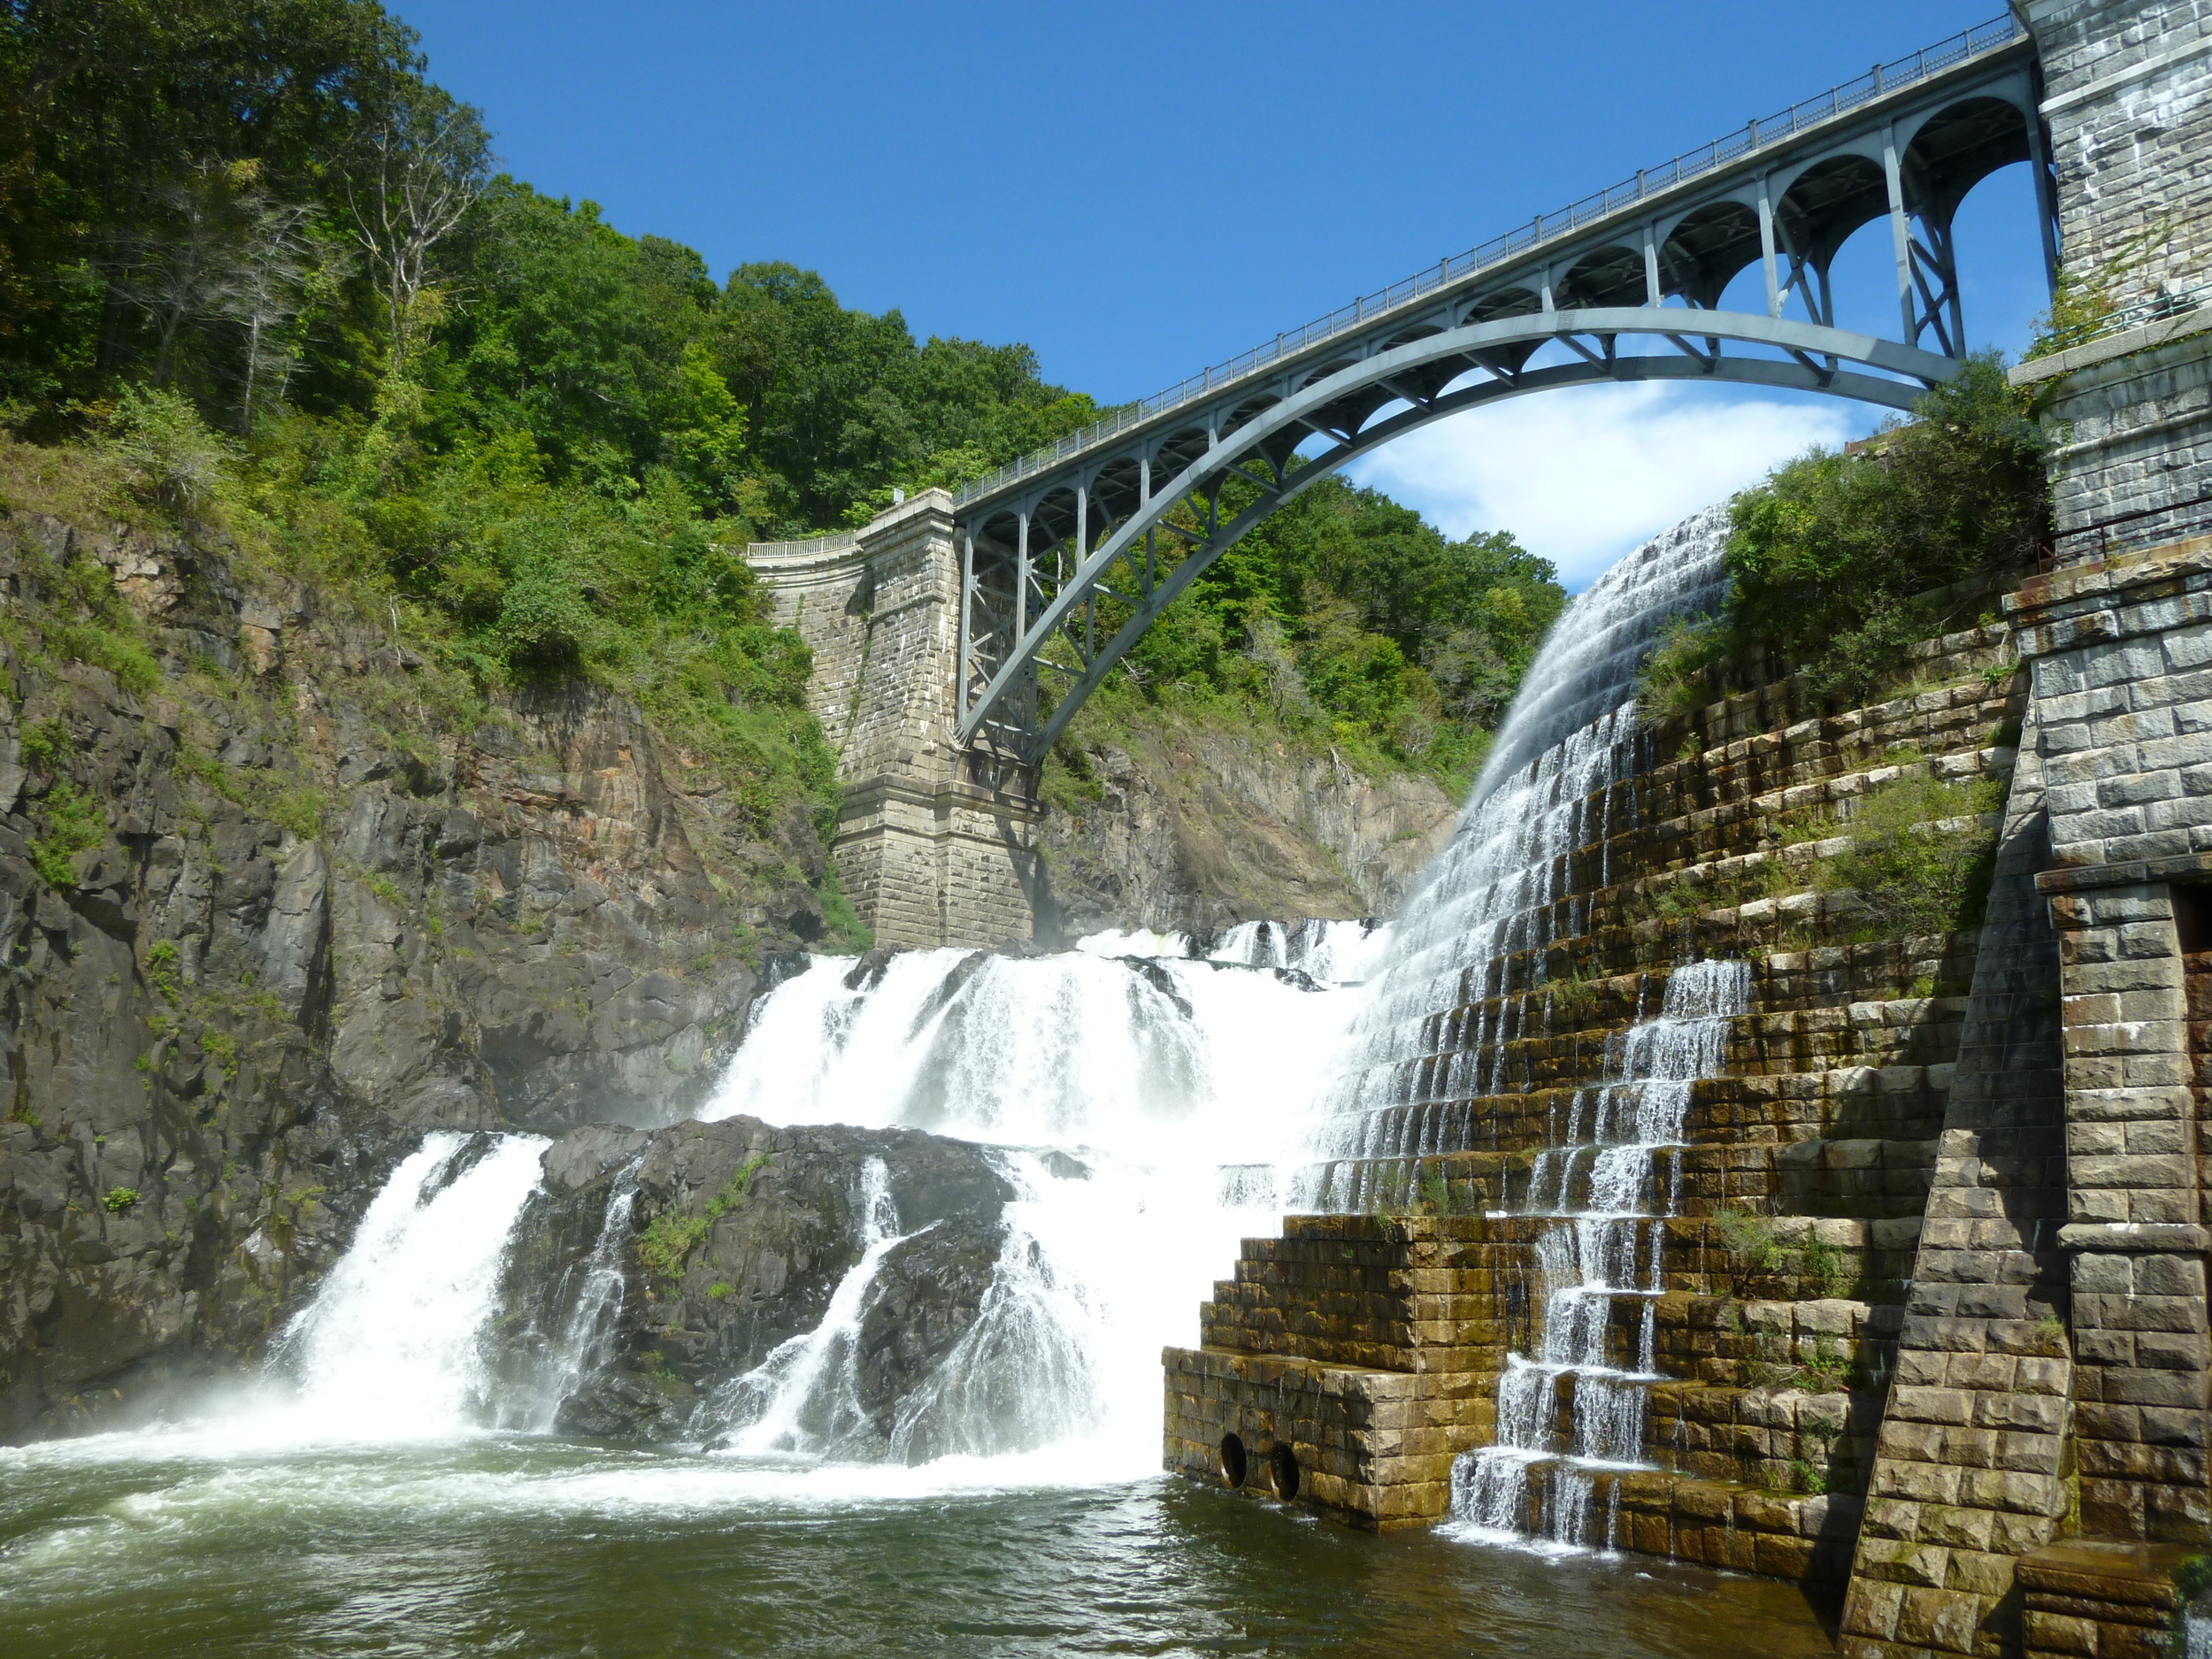 The New Croton Dam in the Hudson Valley of New York combines human ingenuity with the natural beauty of falling water.